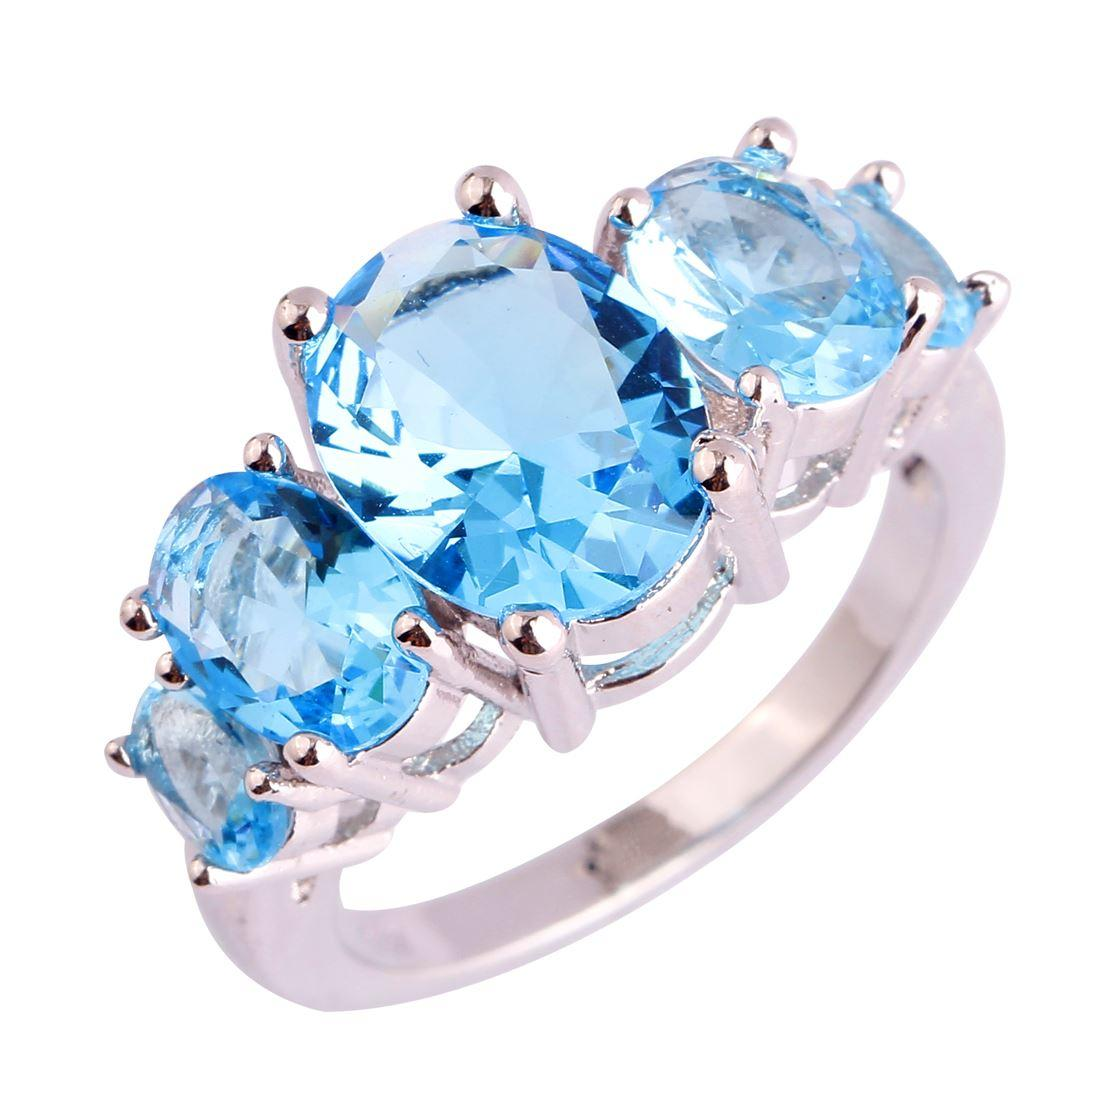 Lab Lab Art Deco Blue Topaz Gems 18K White Gold Plated Silver Ring Size 6 7 8 9 10 11 12 13 Free Shipping Wholesale Party